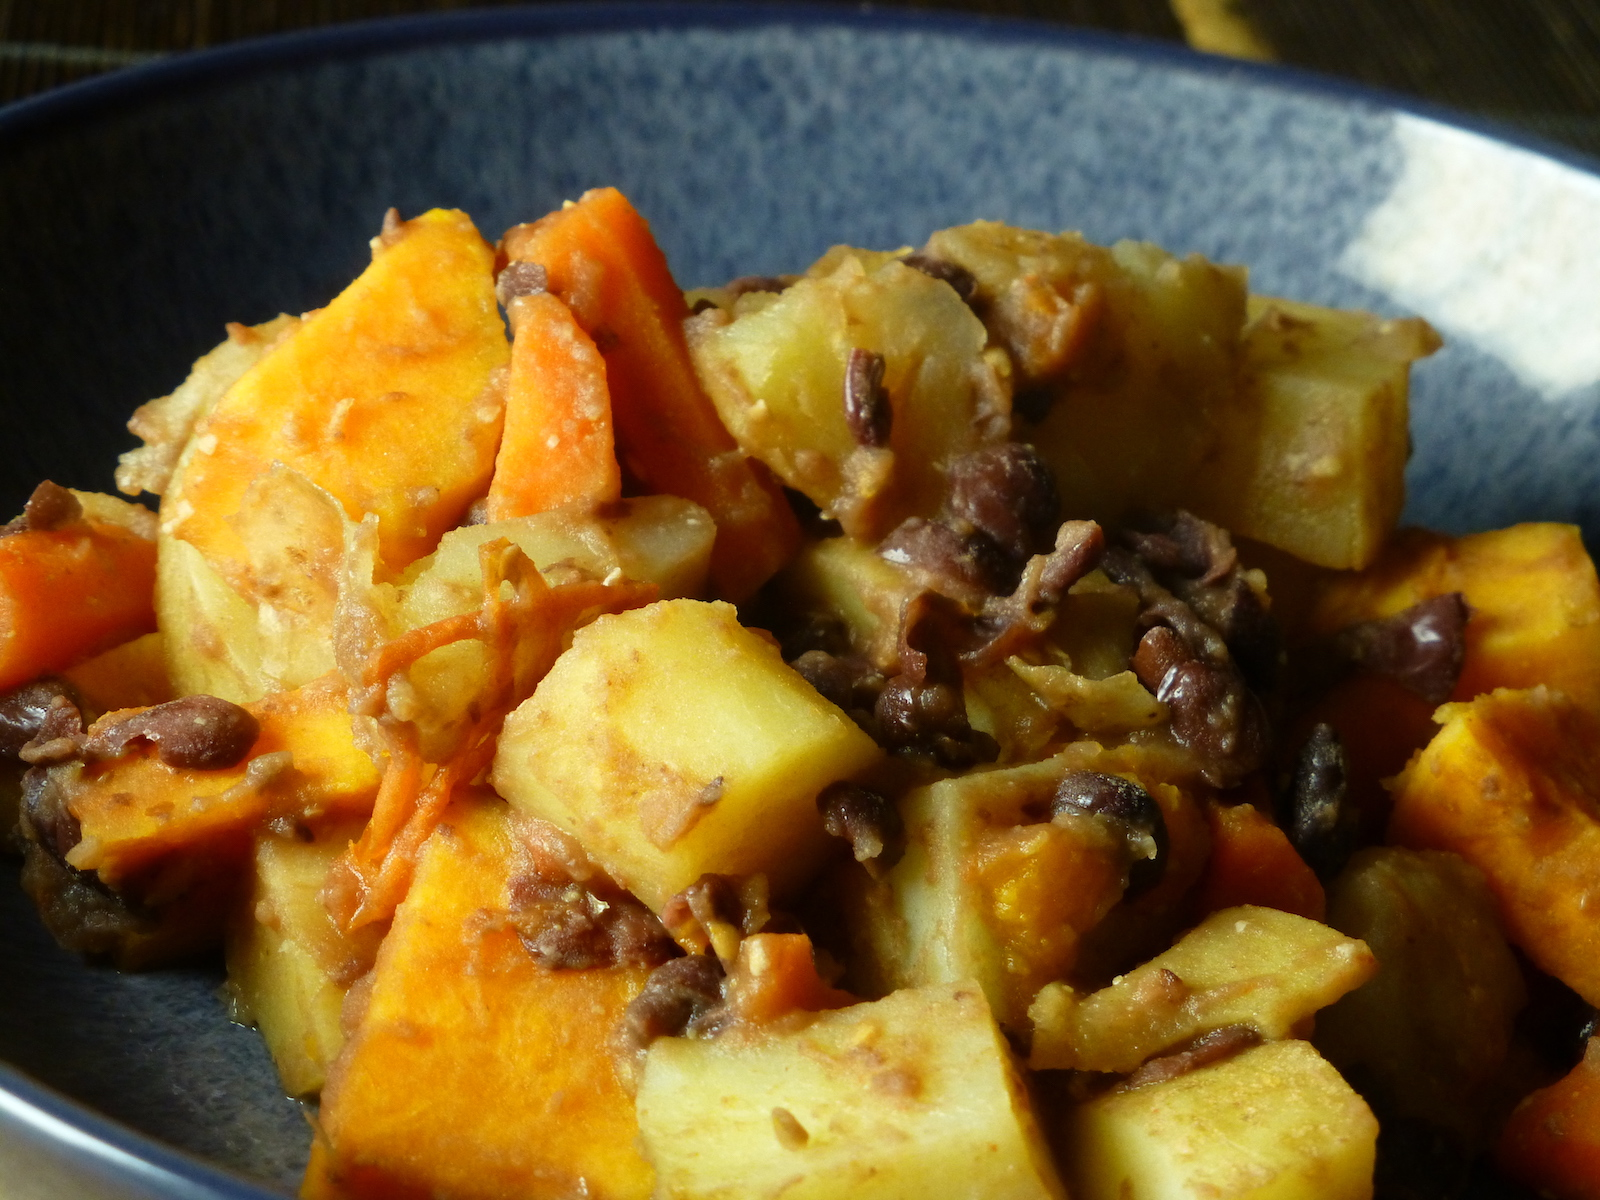 Simple winter hotpot with root vegetables and adzuki beans